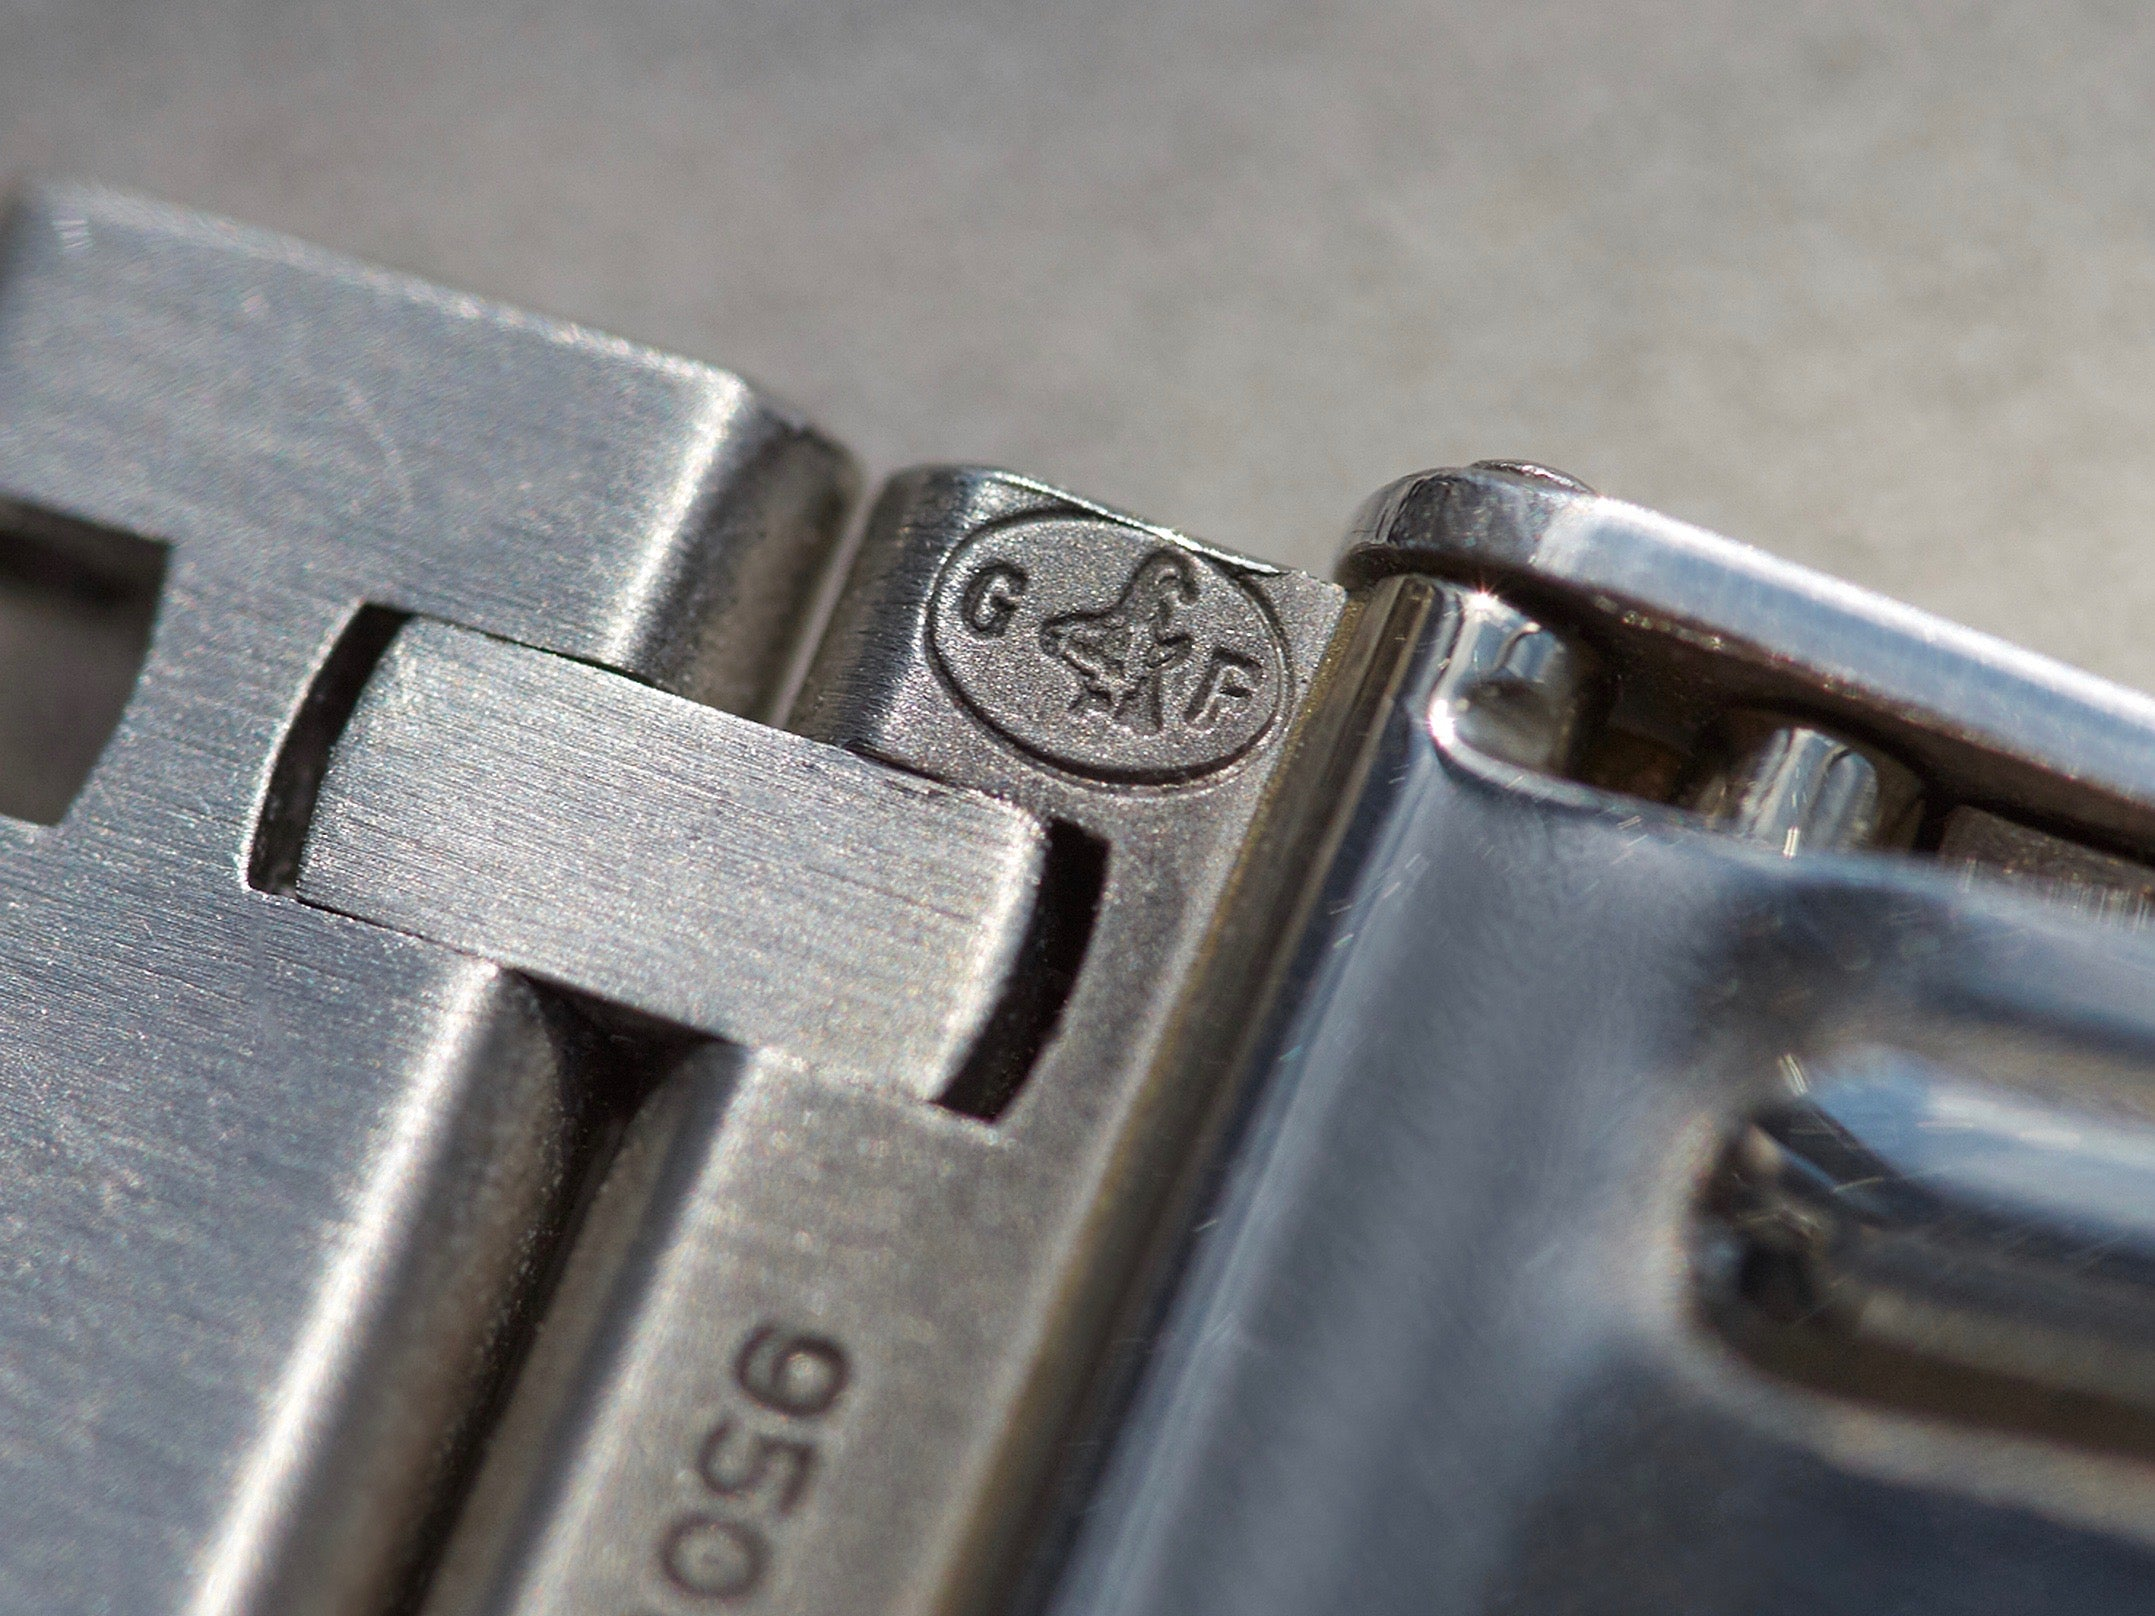 The stamped logo of Gay Freres inside a watch clasp for A Collected Man London